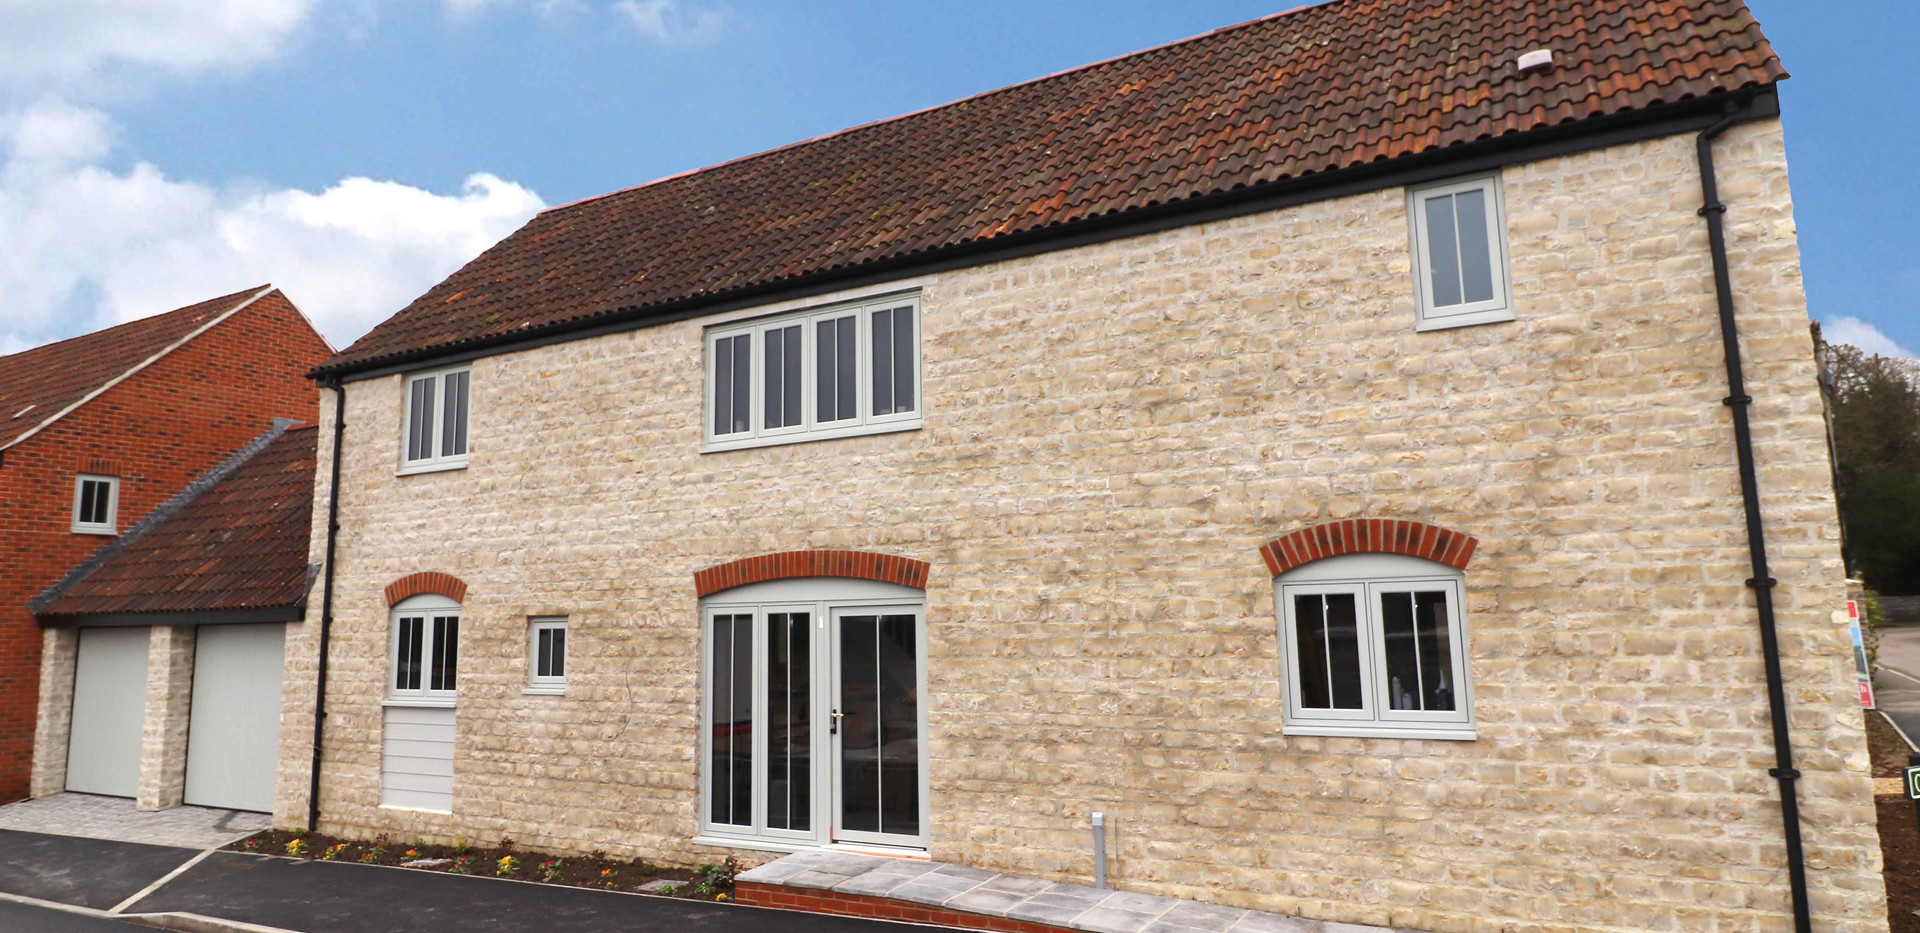 Plot 1 Old Forge Court